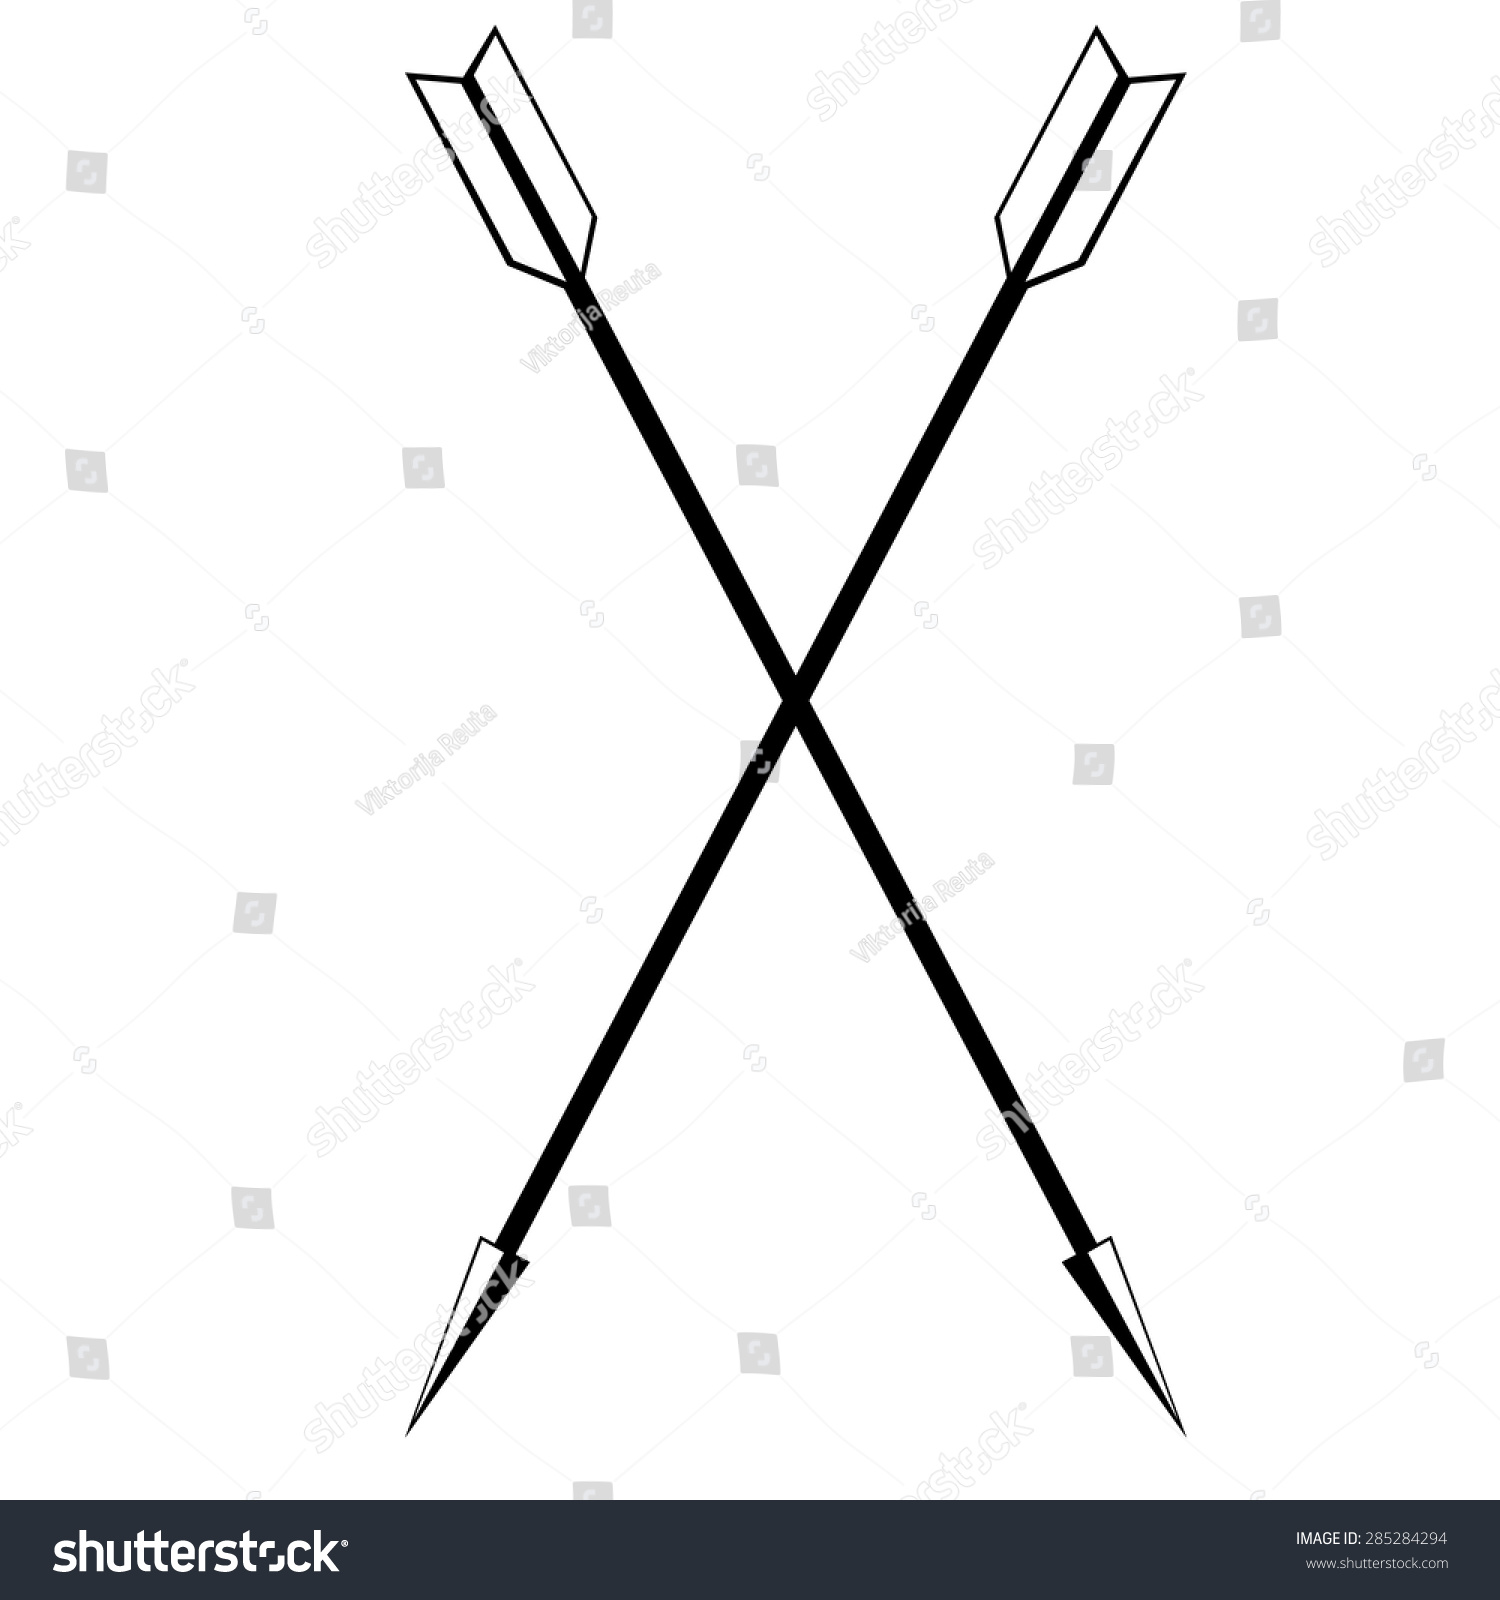 the early contributors to the development of the bowhunting sport Archery is the practice or skill of using a bow to shoot arrows the word comes from the latin arcus meaning 'bow' or 'arch' historically, archery has been used for hunting and combat and was invented in the late palaeolithic or early mesolithic periods.